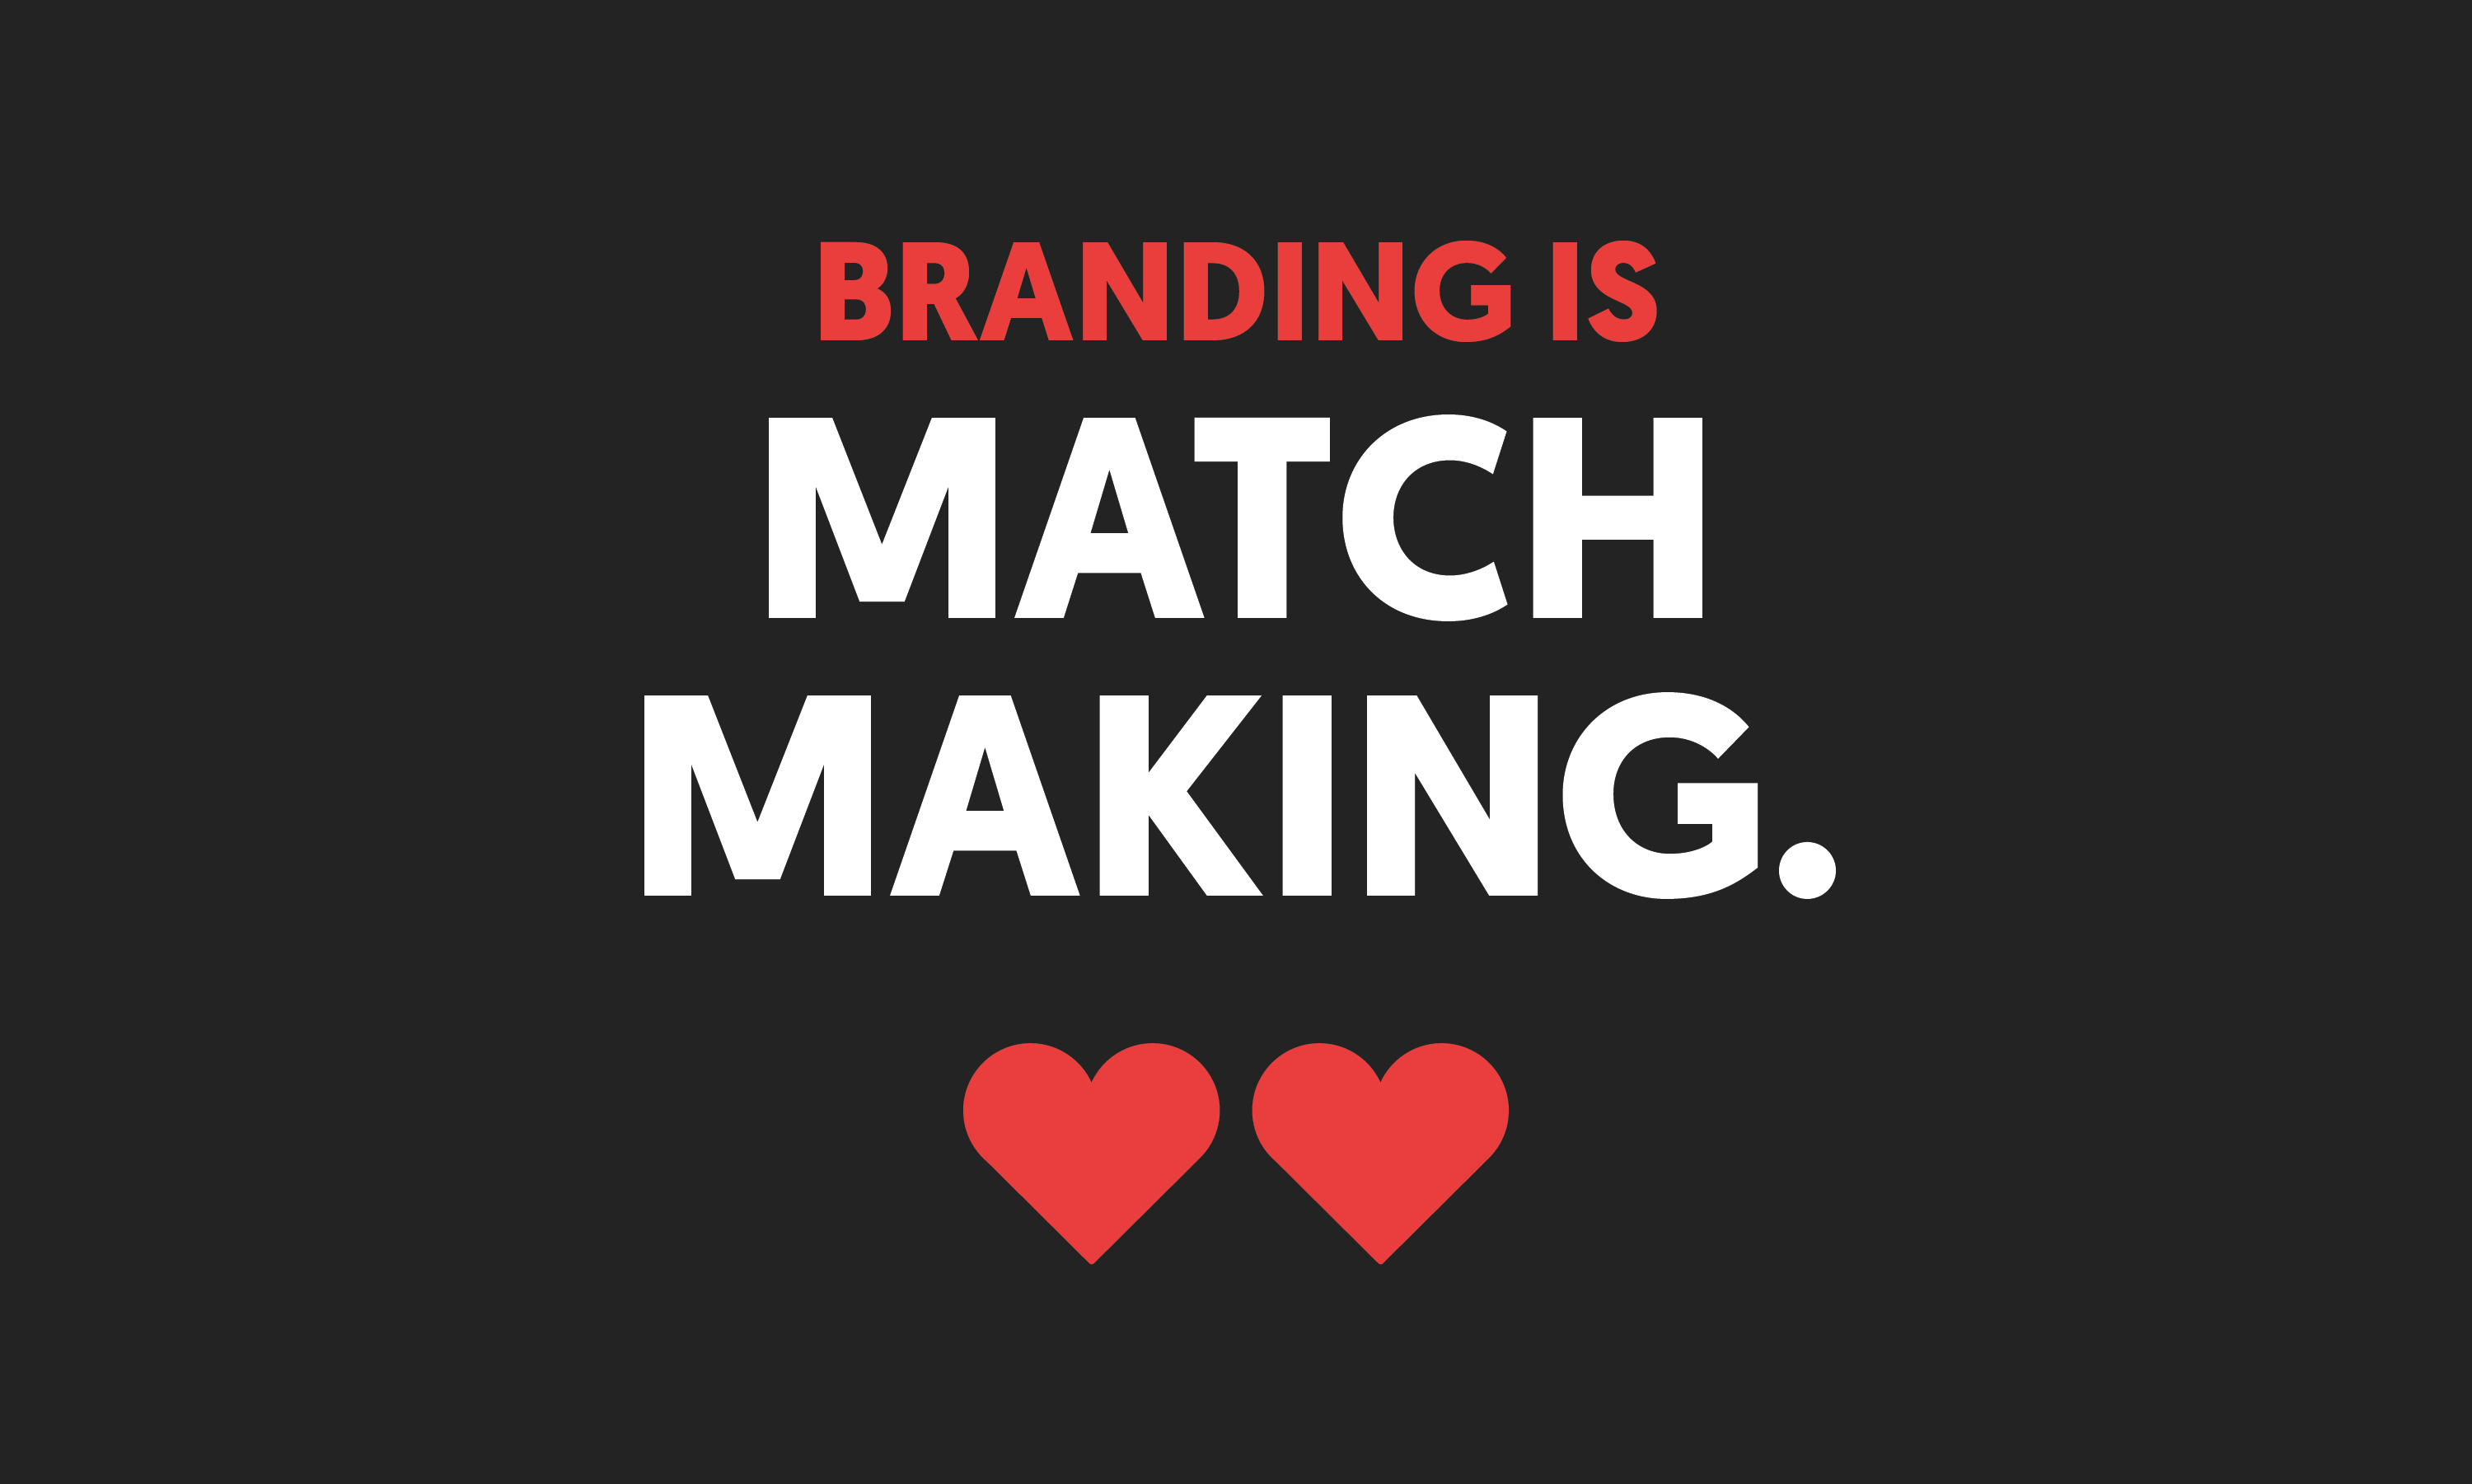 Branding Is Matchmaking. Text with 2 hearts.